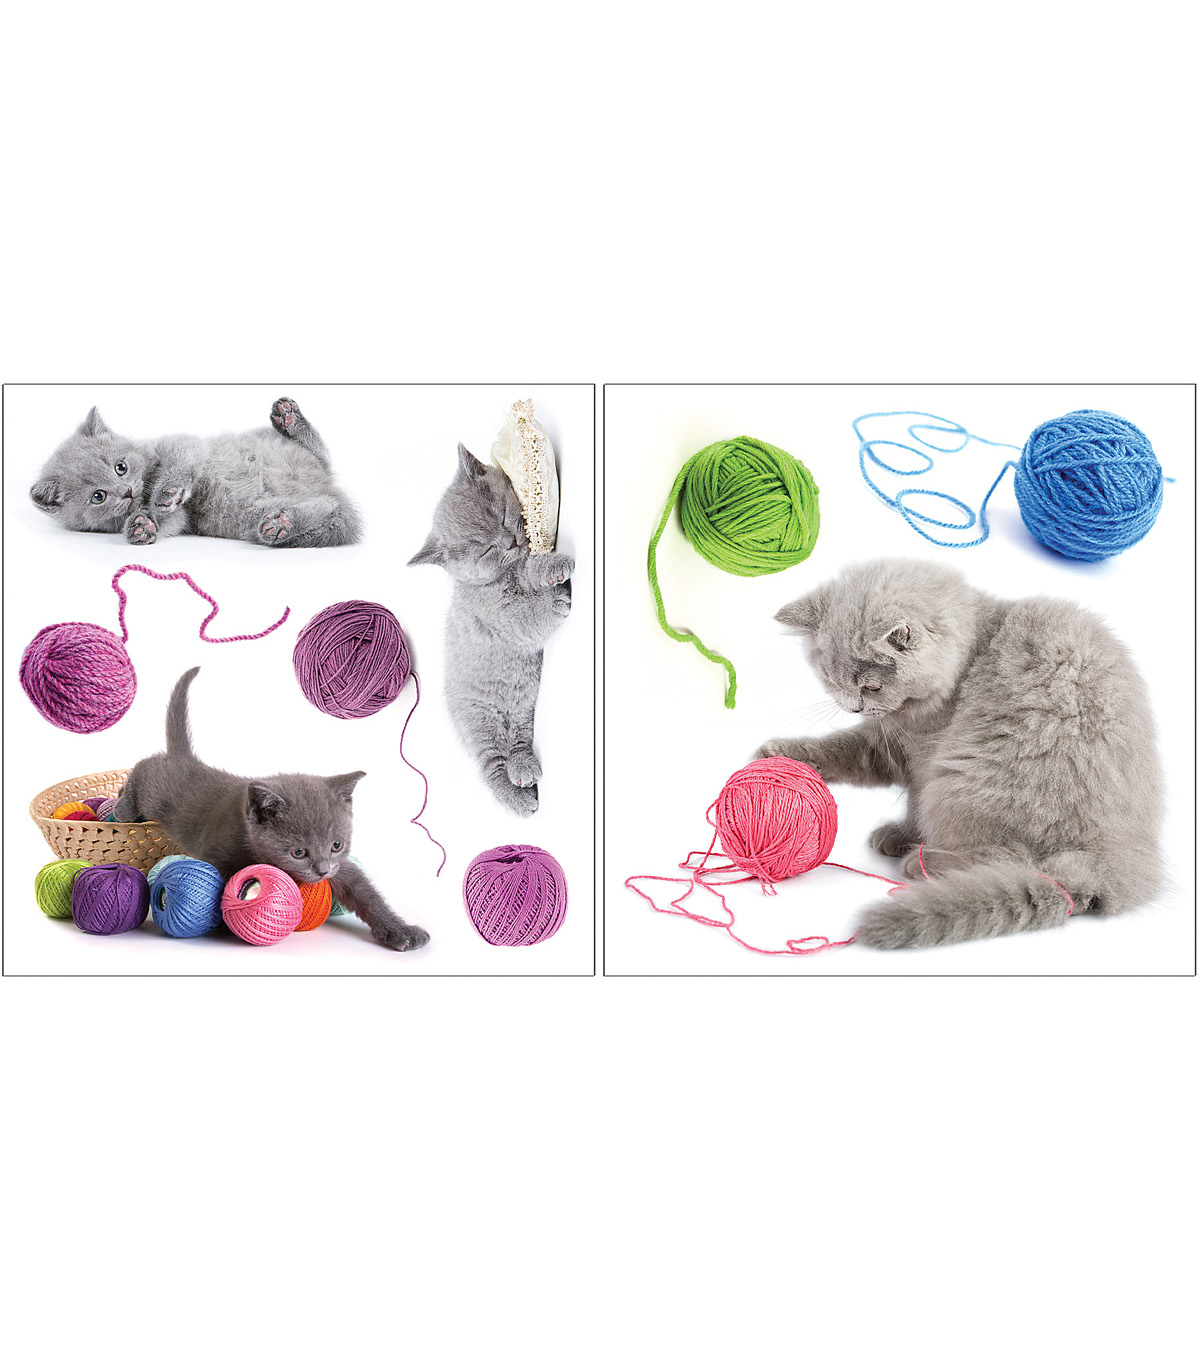 Home Decor Playful Cats Wall Stickers, 9 Piece Set